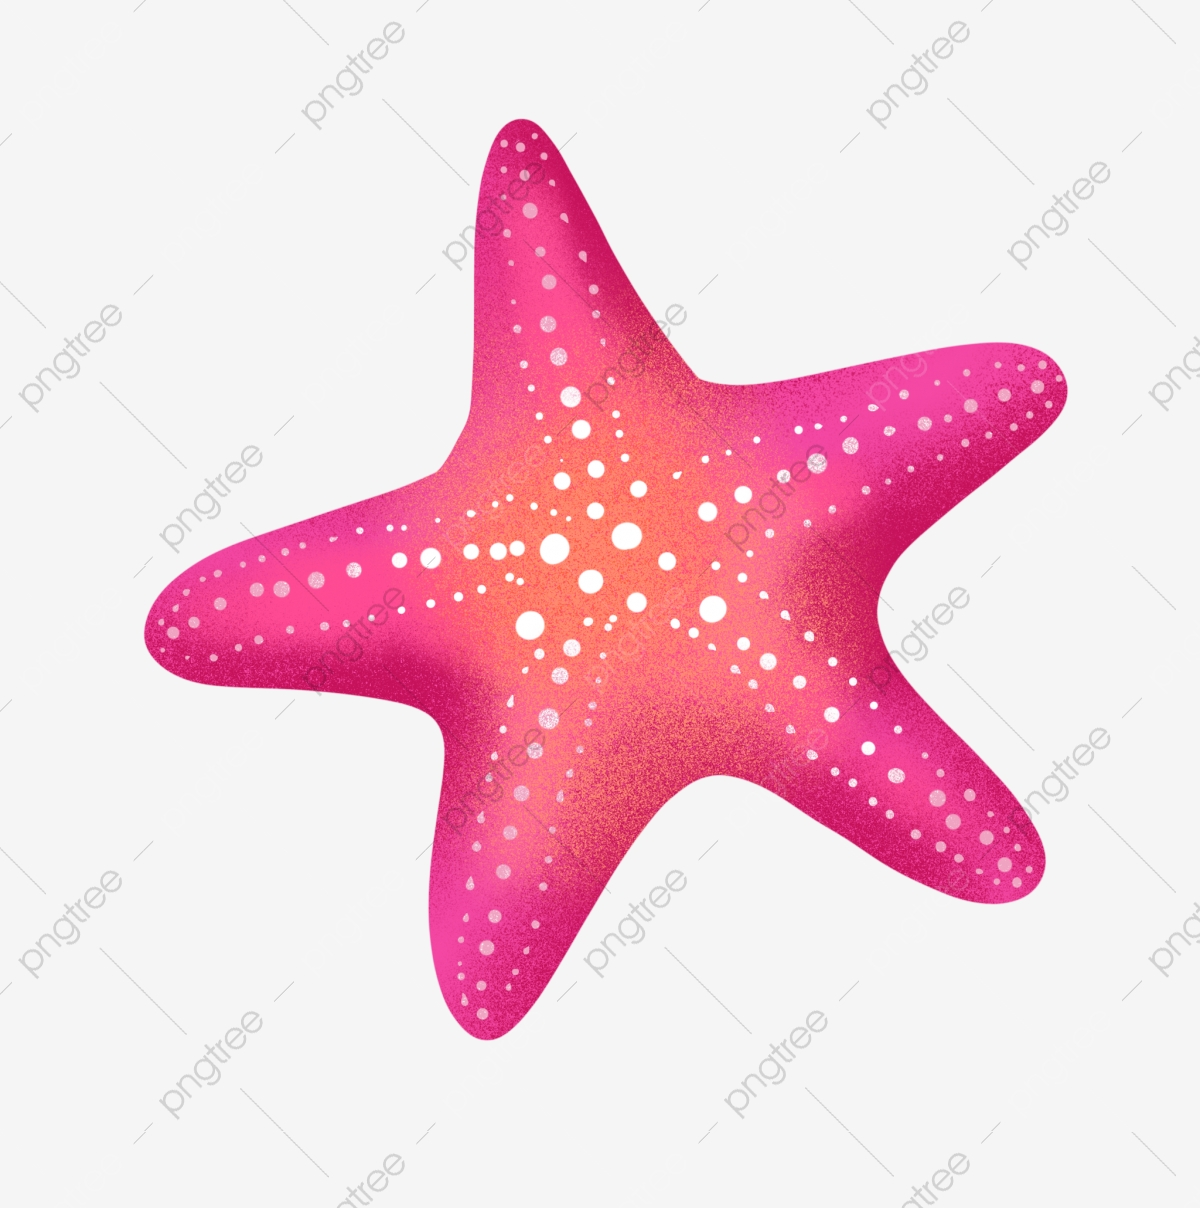 Starfish Clipart Png Images Vector And Psd Files Free Download On Pngtree